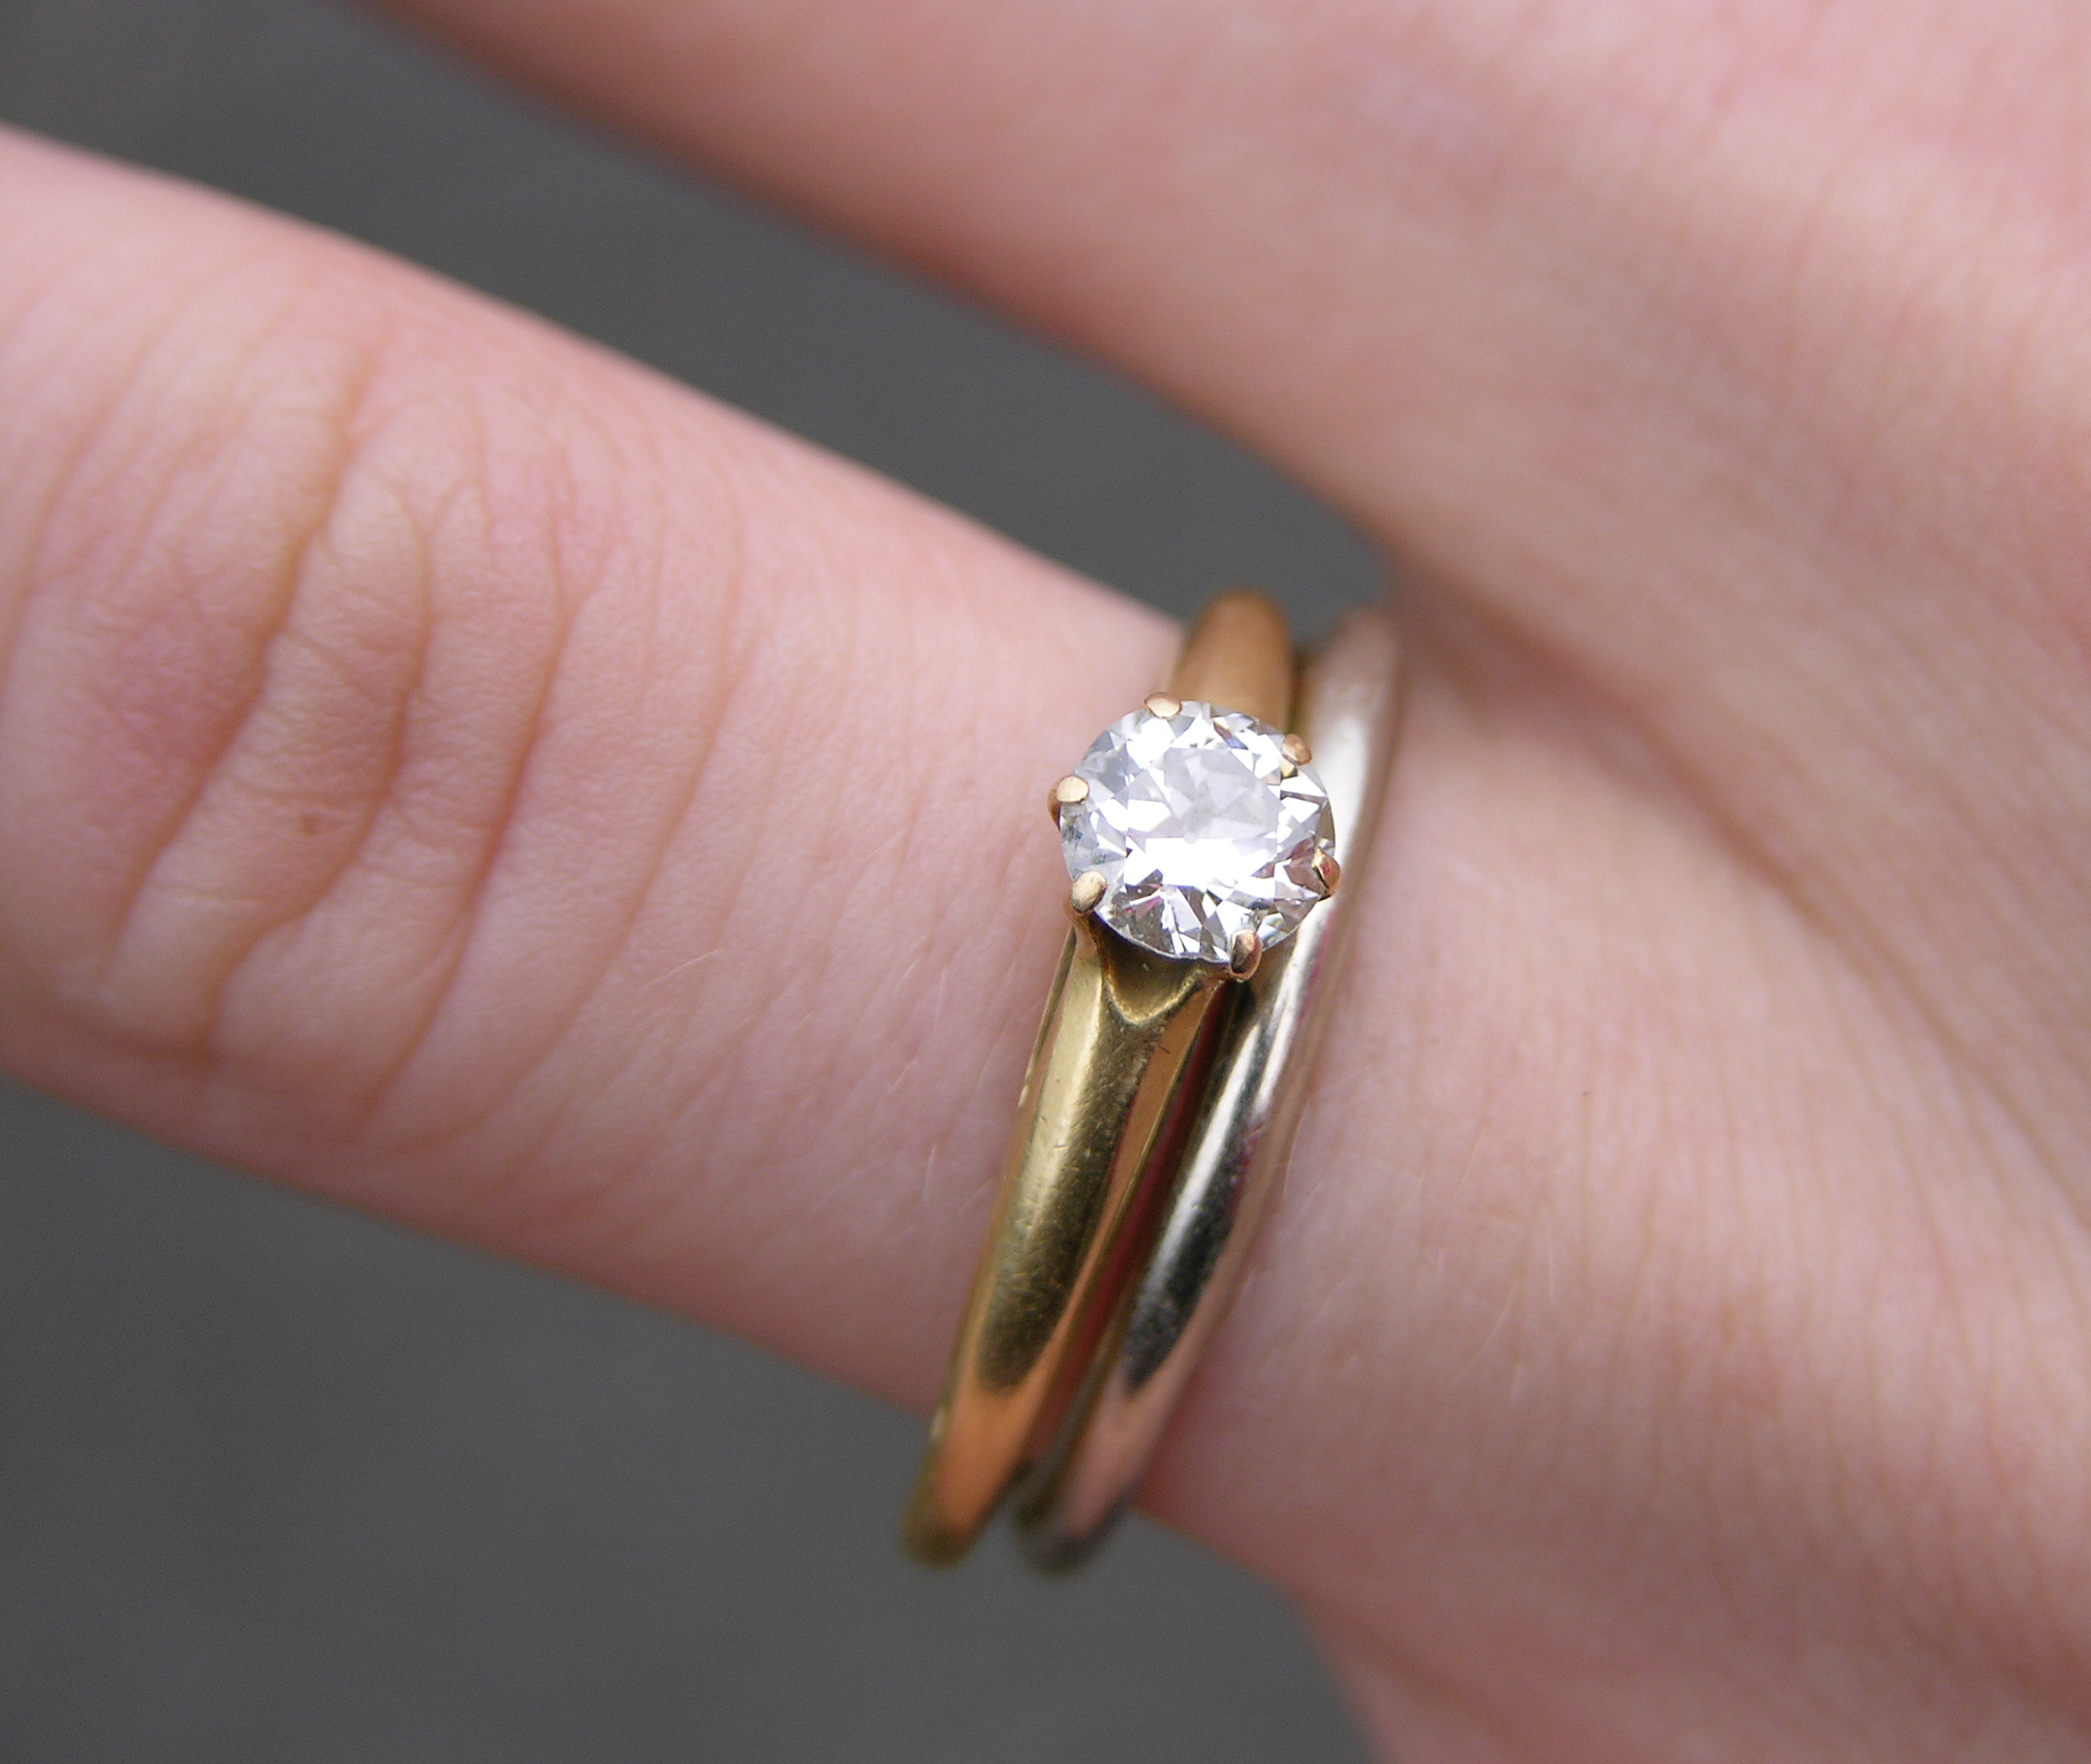 diamond in and giant with stones engagement gold ring pin halo wedding baguette pave yellow emerald cut rings accent